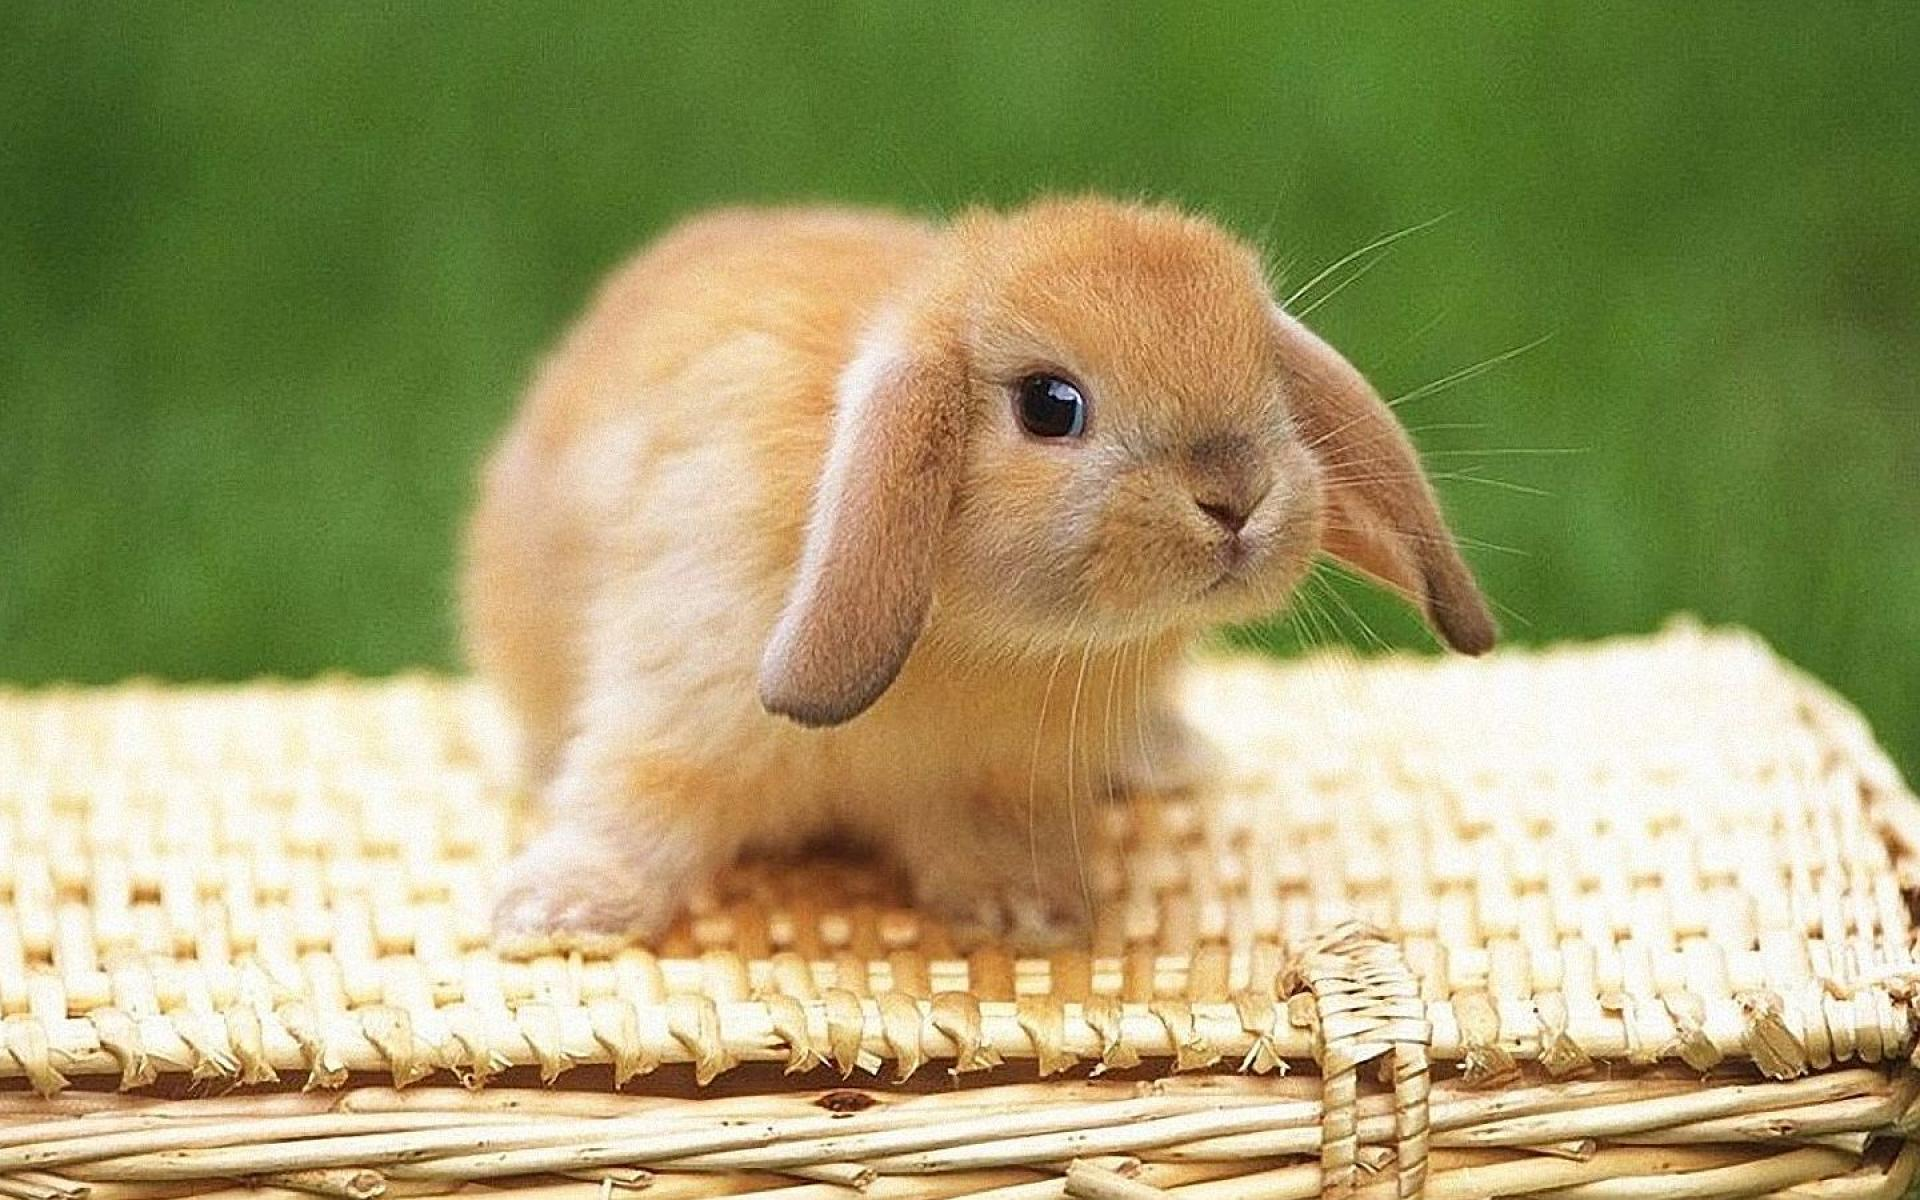 ... bunny-wallpapers-image ...